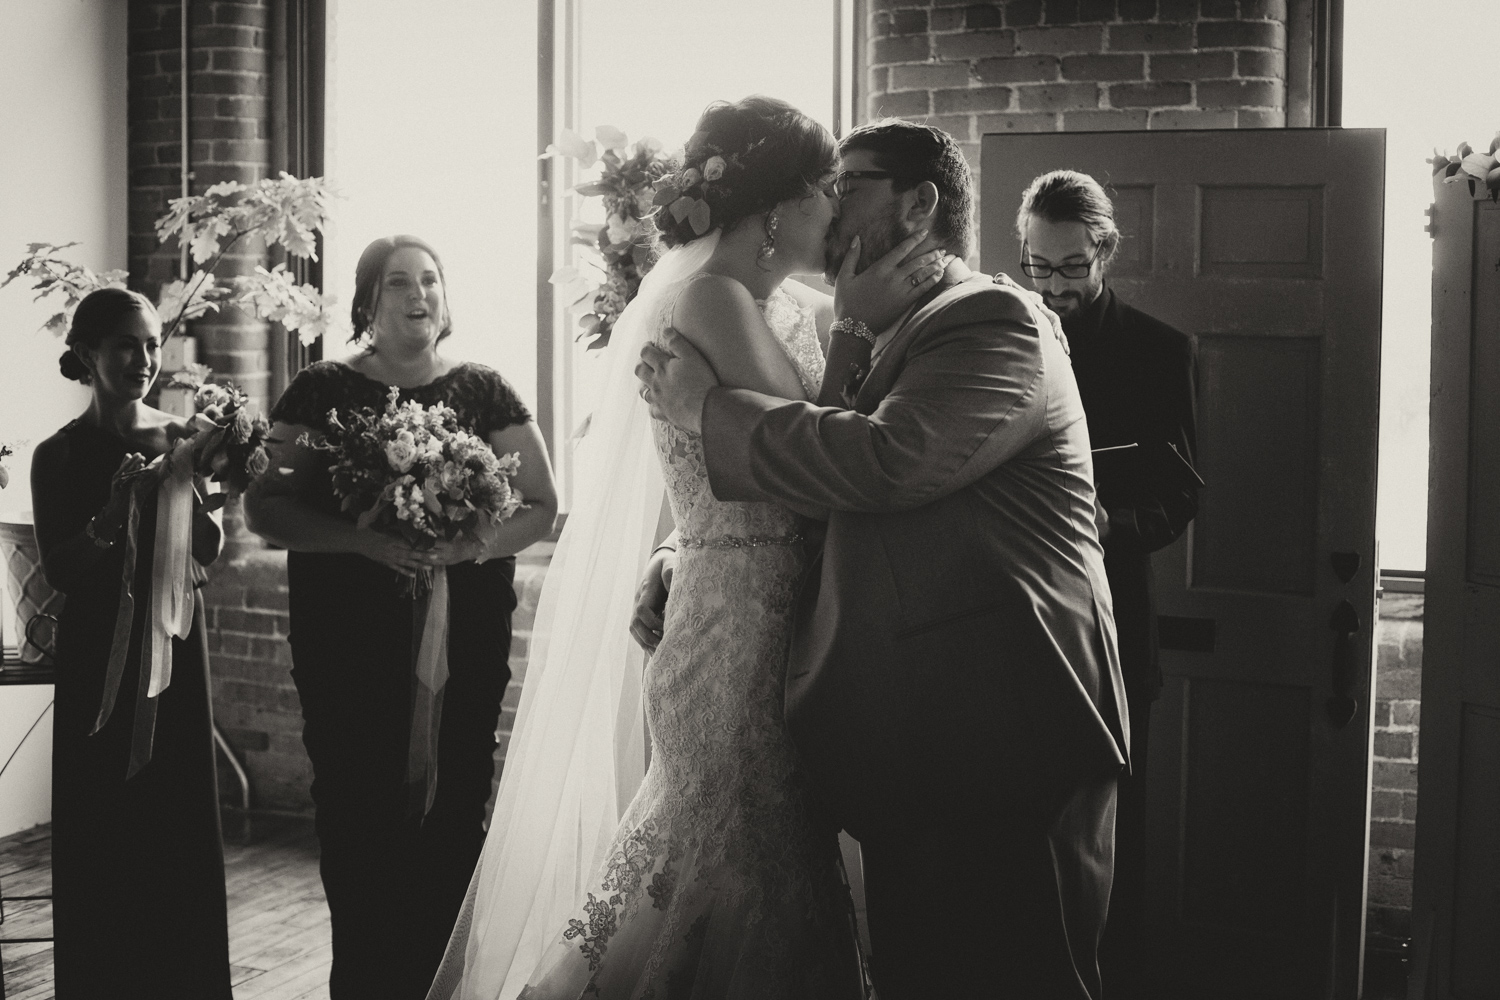 ceremony mill 1 at open square wedding jp langlands photography